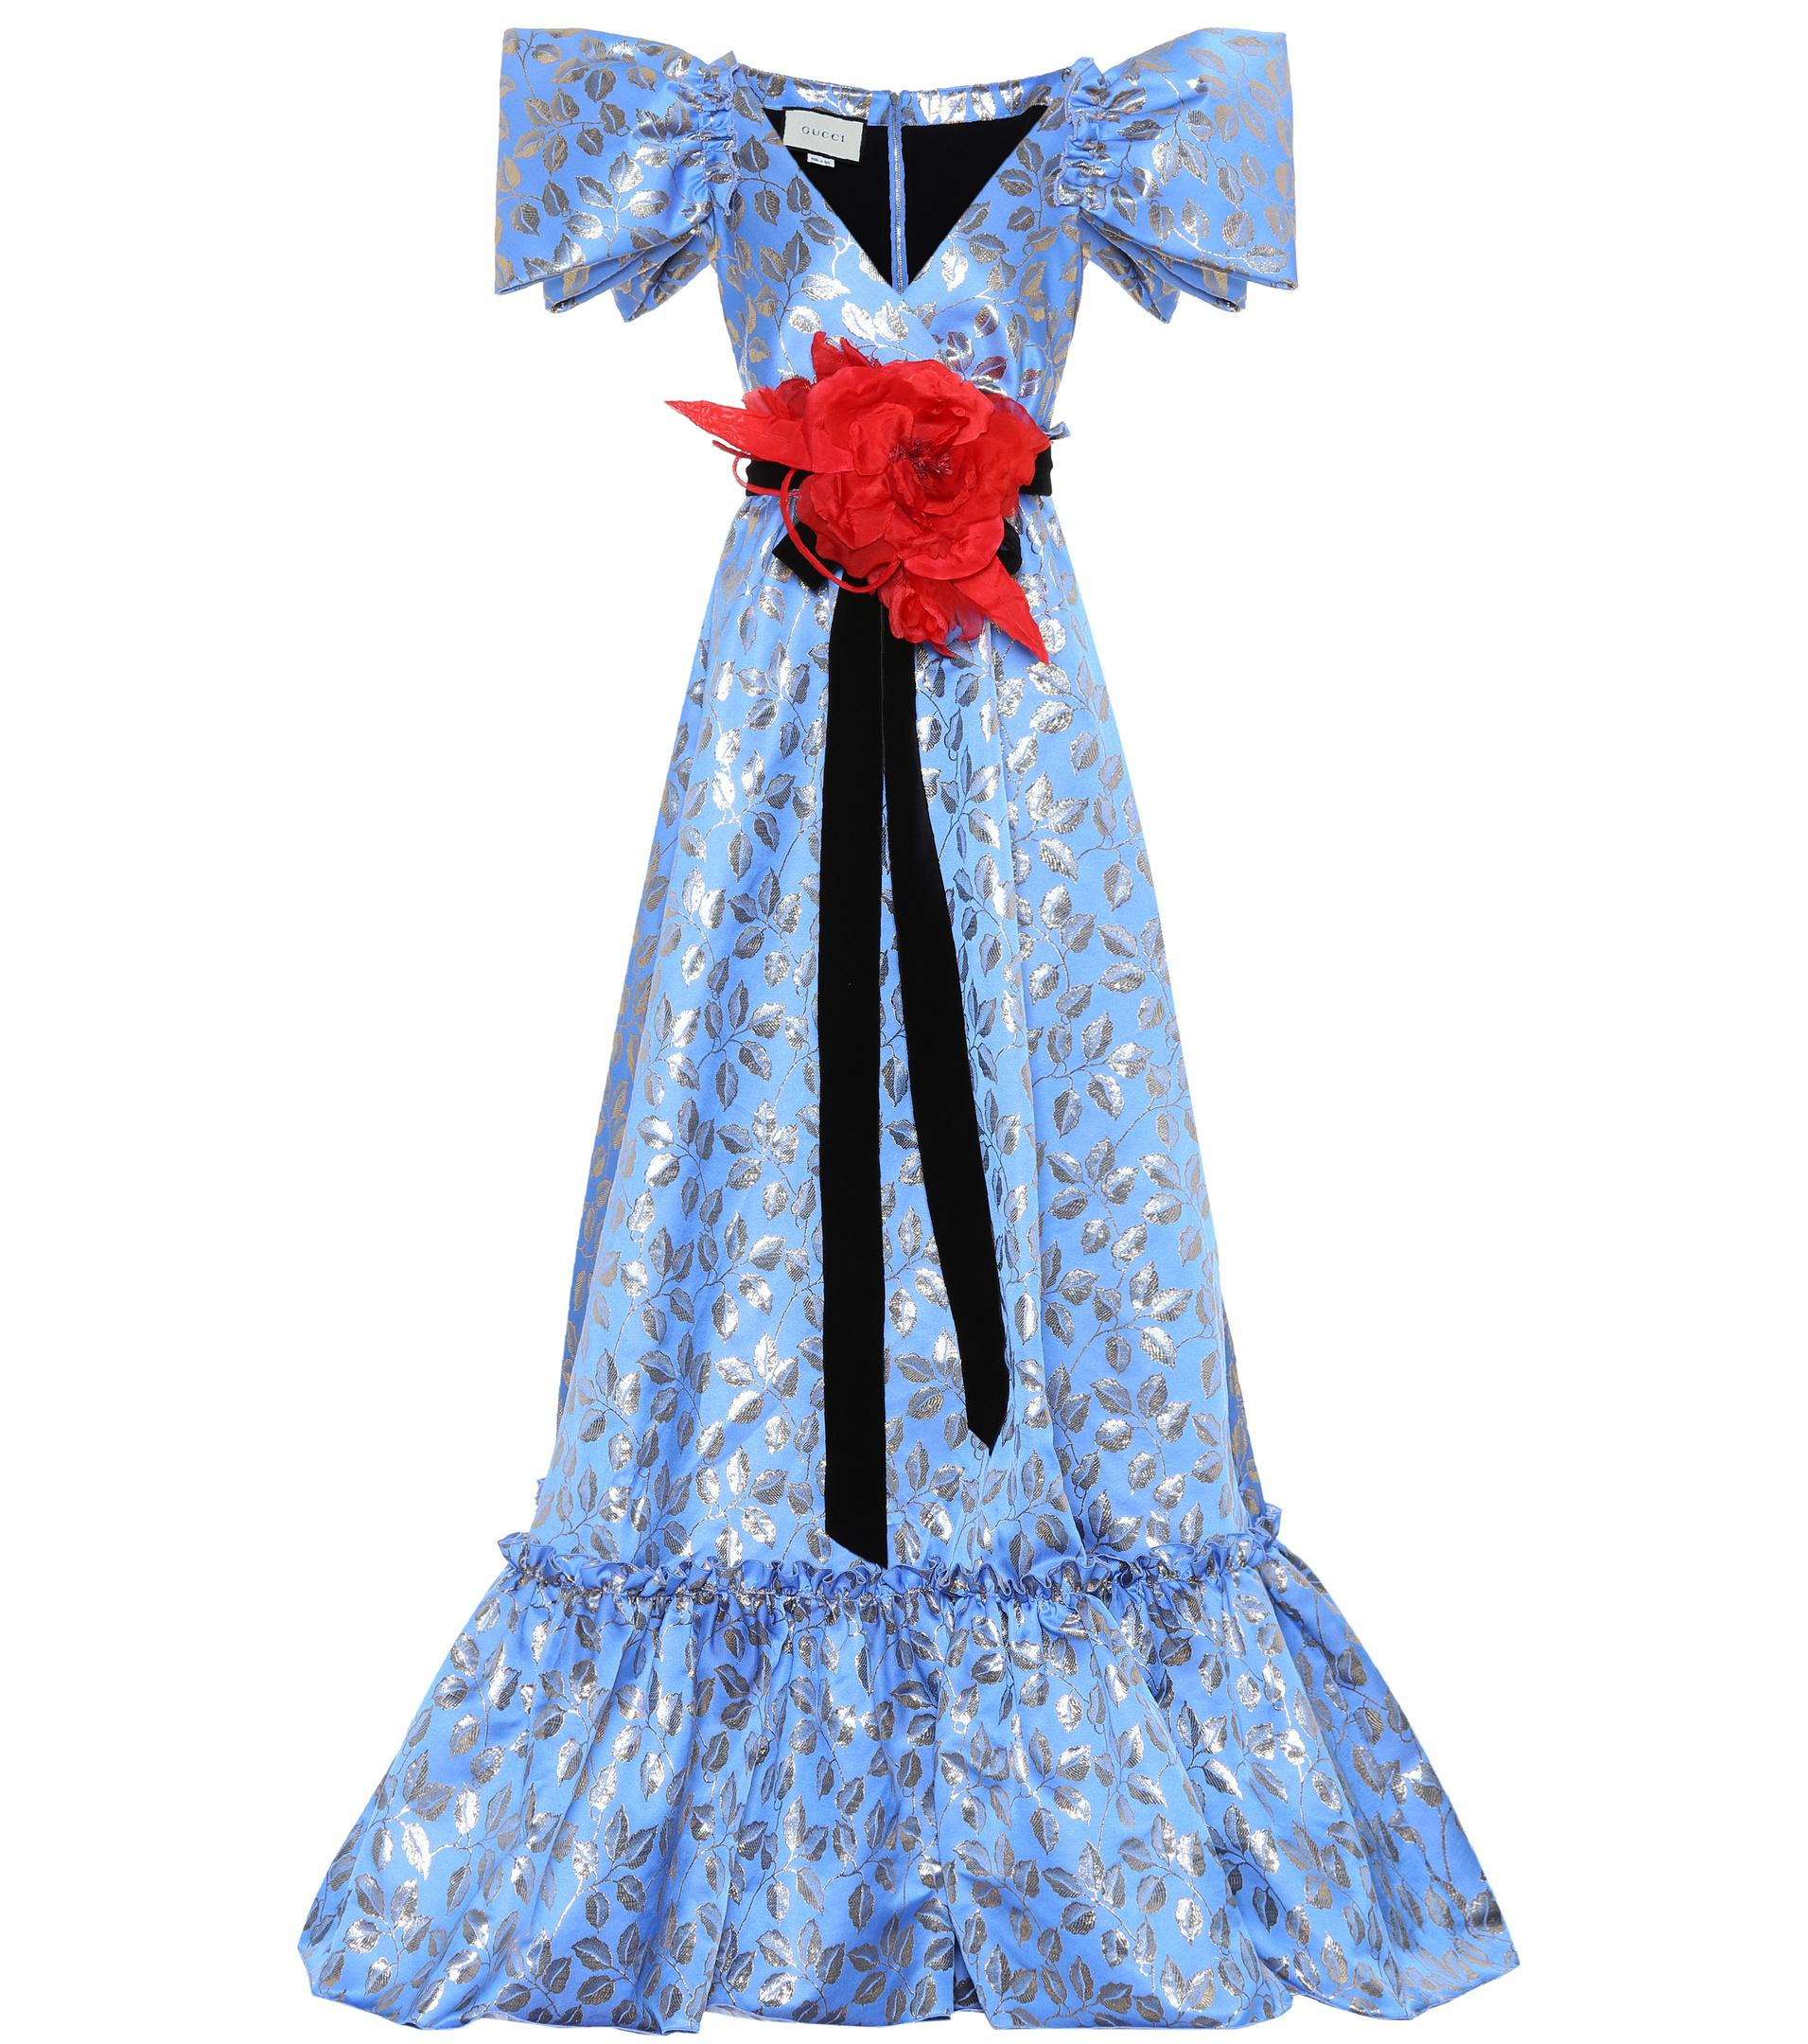 Lyst Gucci Floral Jacquard Gown in Blue